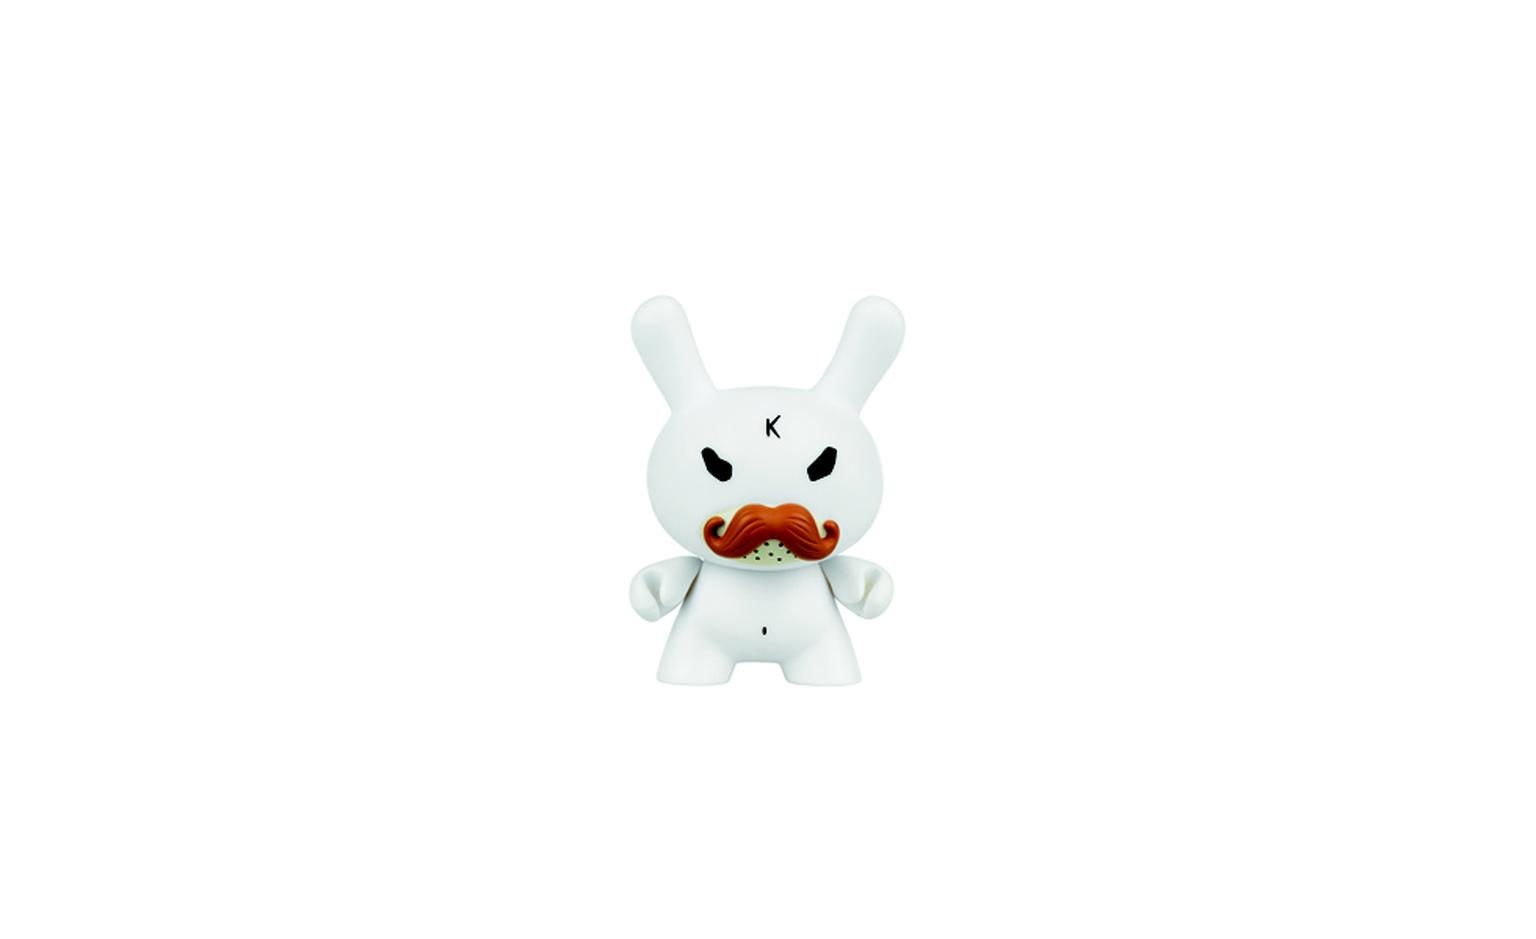 SWATCH AND KIDROBOT. Swatch, Ski Instructor. Artist: Frank Kozik. Price from £44.50